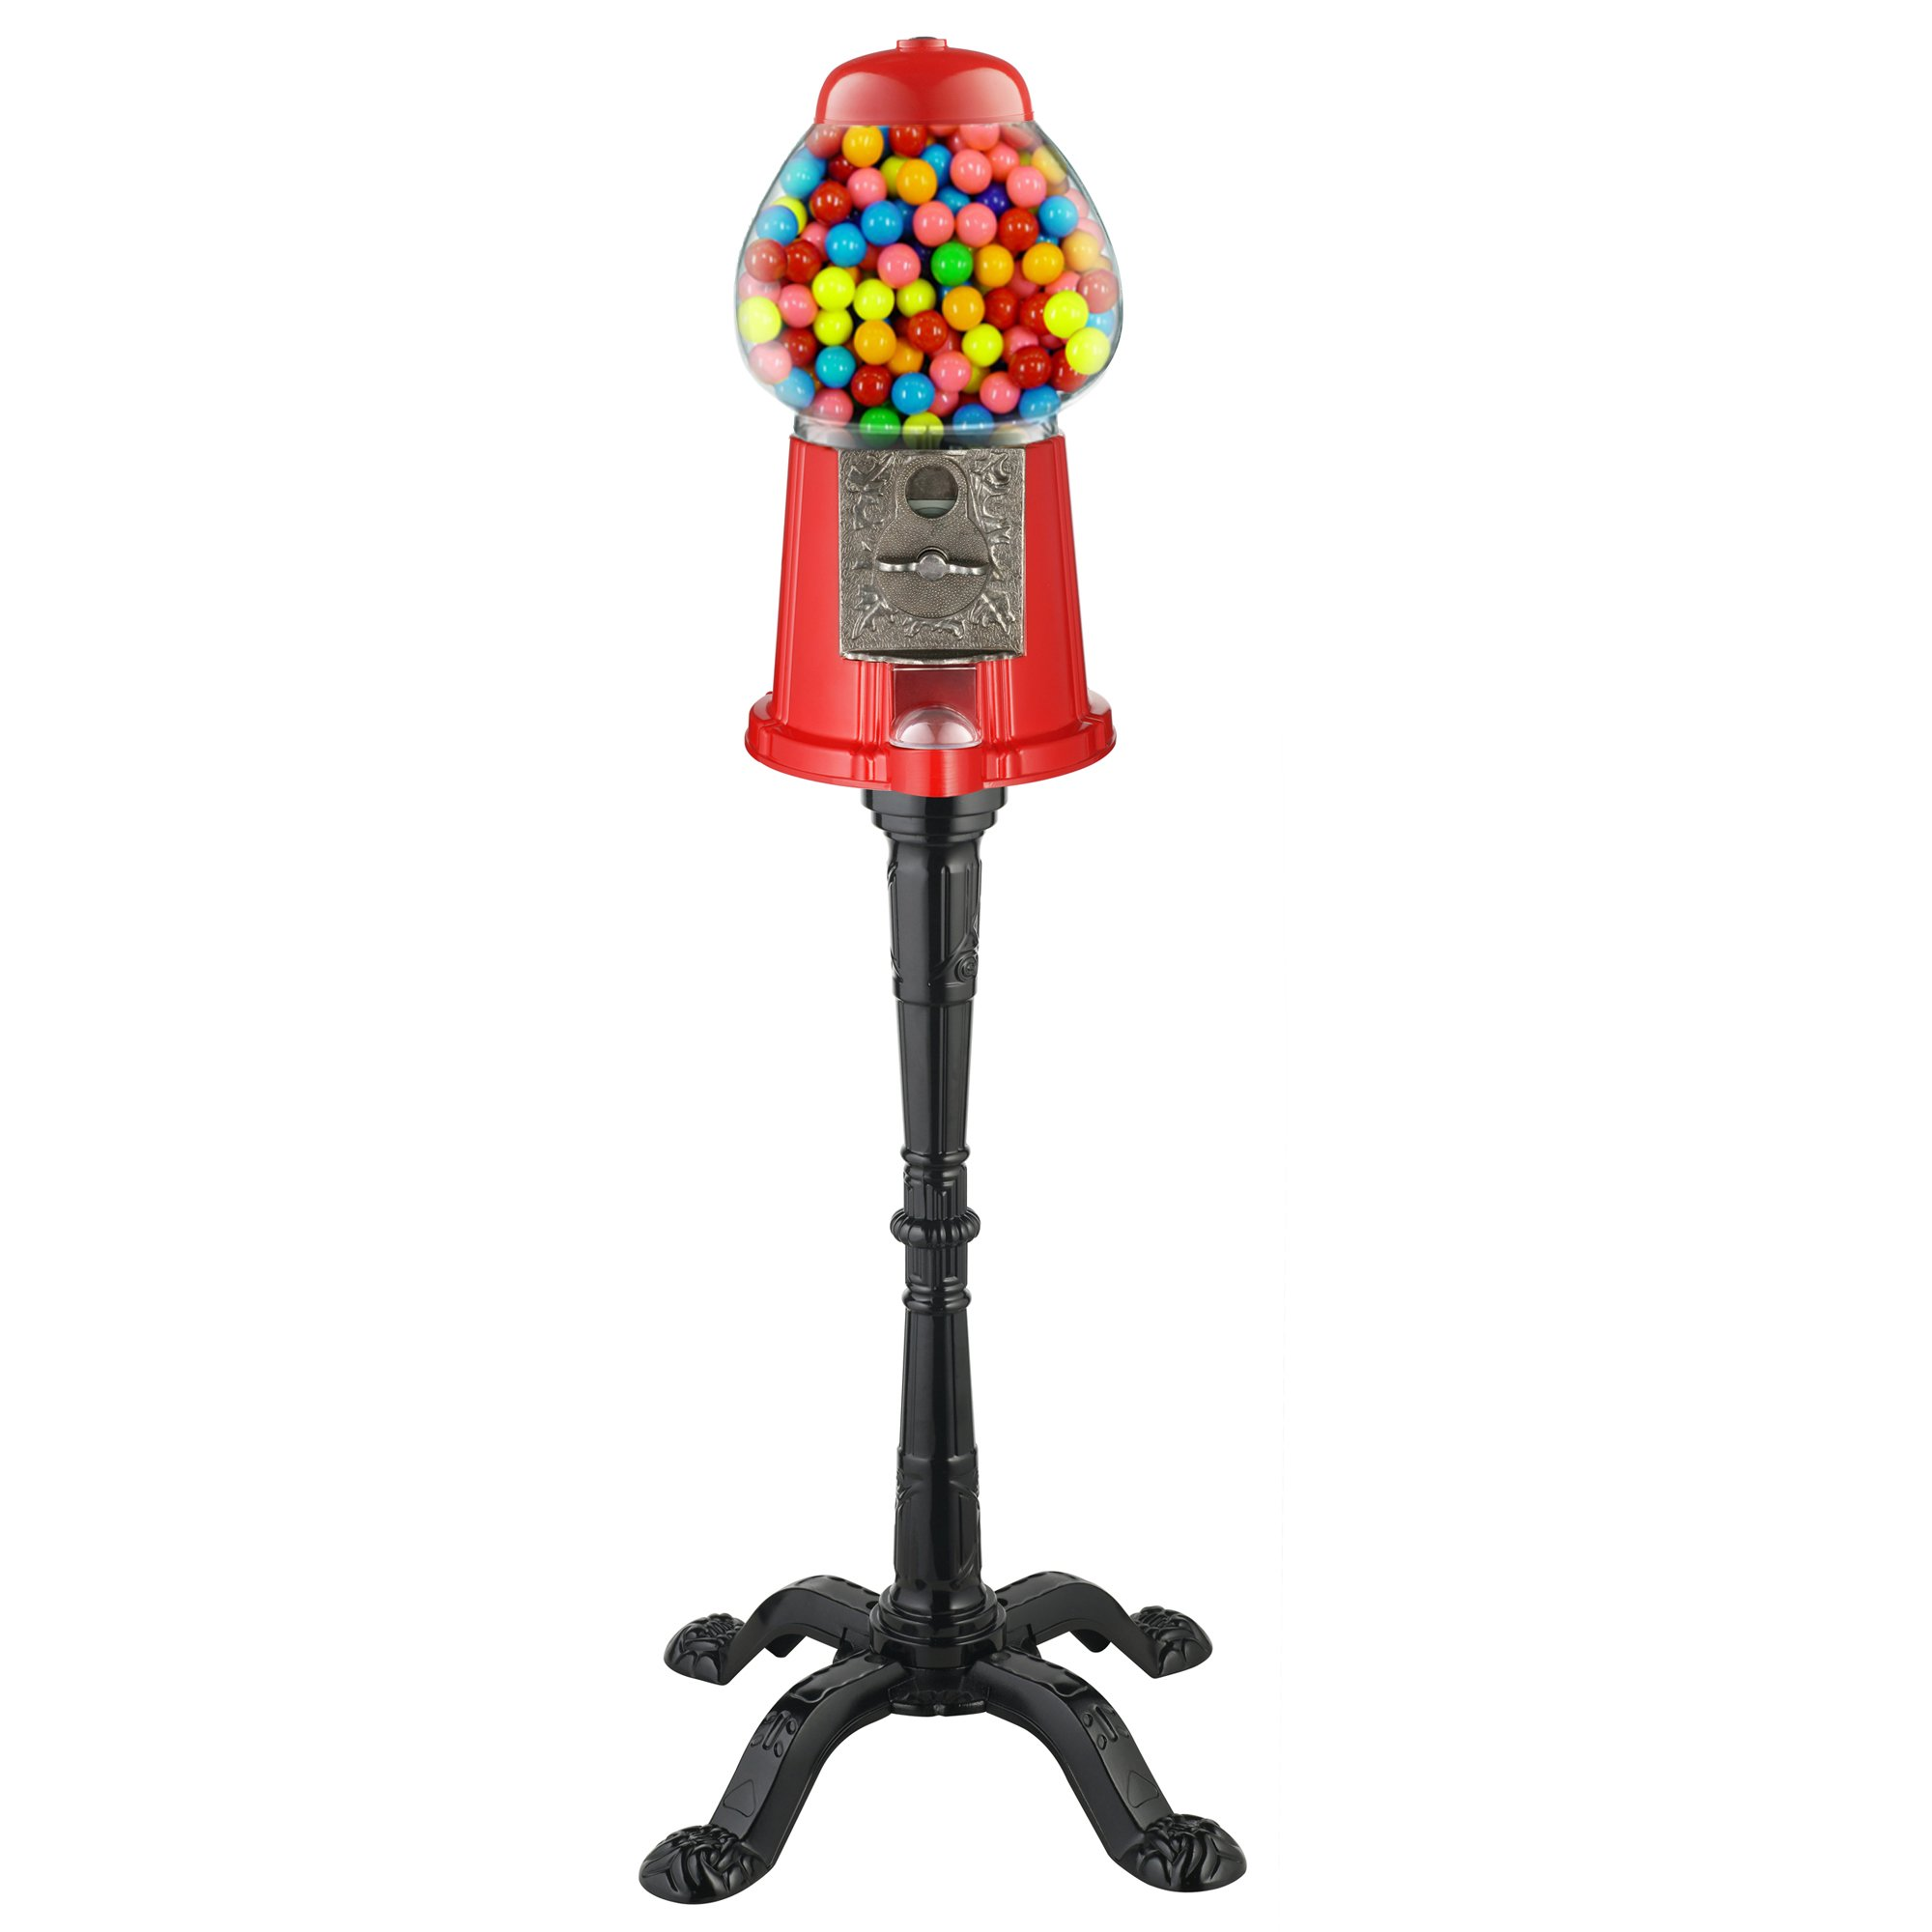 Great Northern 6260 Gumball Machine 15 W ST Vintage Candy Gumball Machine and Bank with Stand, Everyone Loves Gumballs